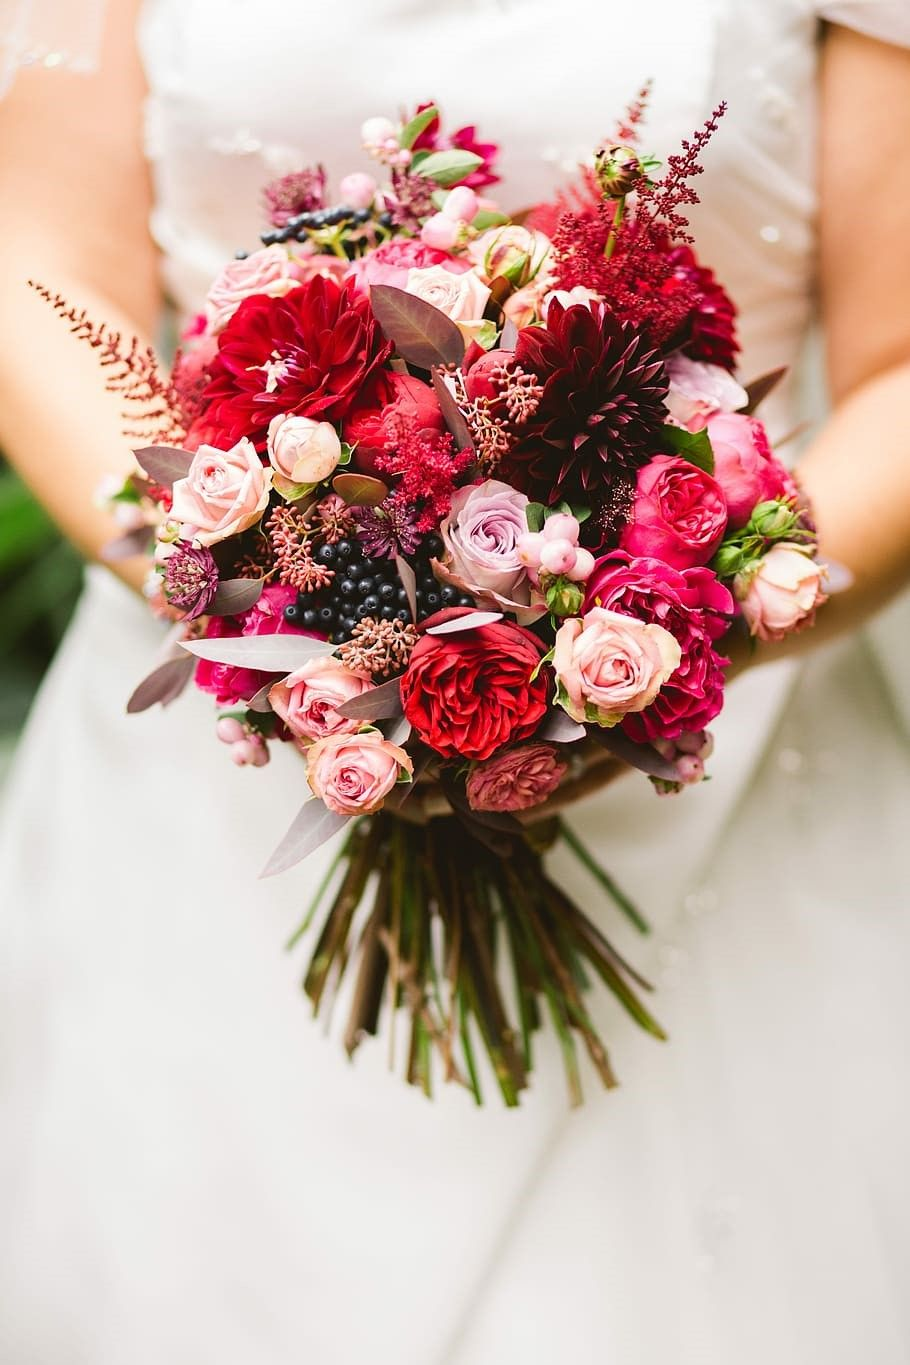 Wedding Bouquet, How to Make Your Wedding Bouquet Shine